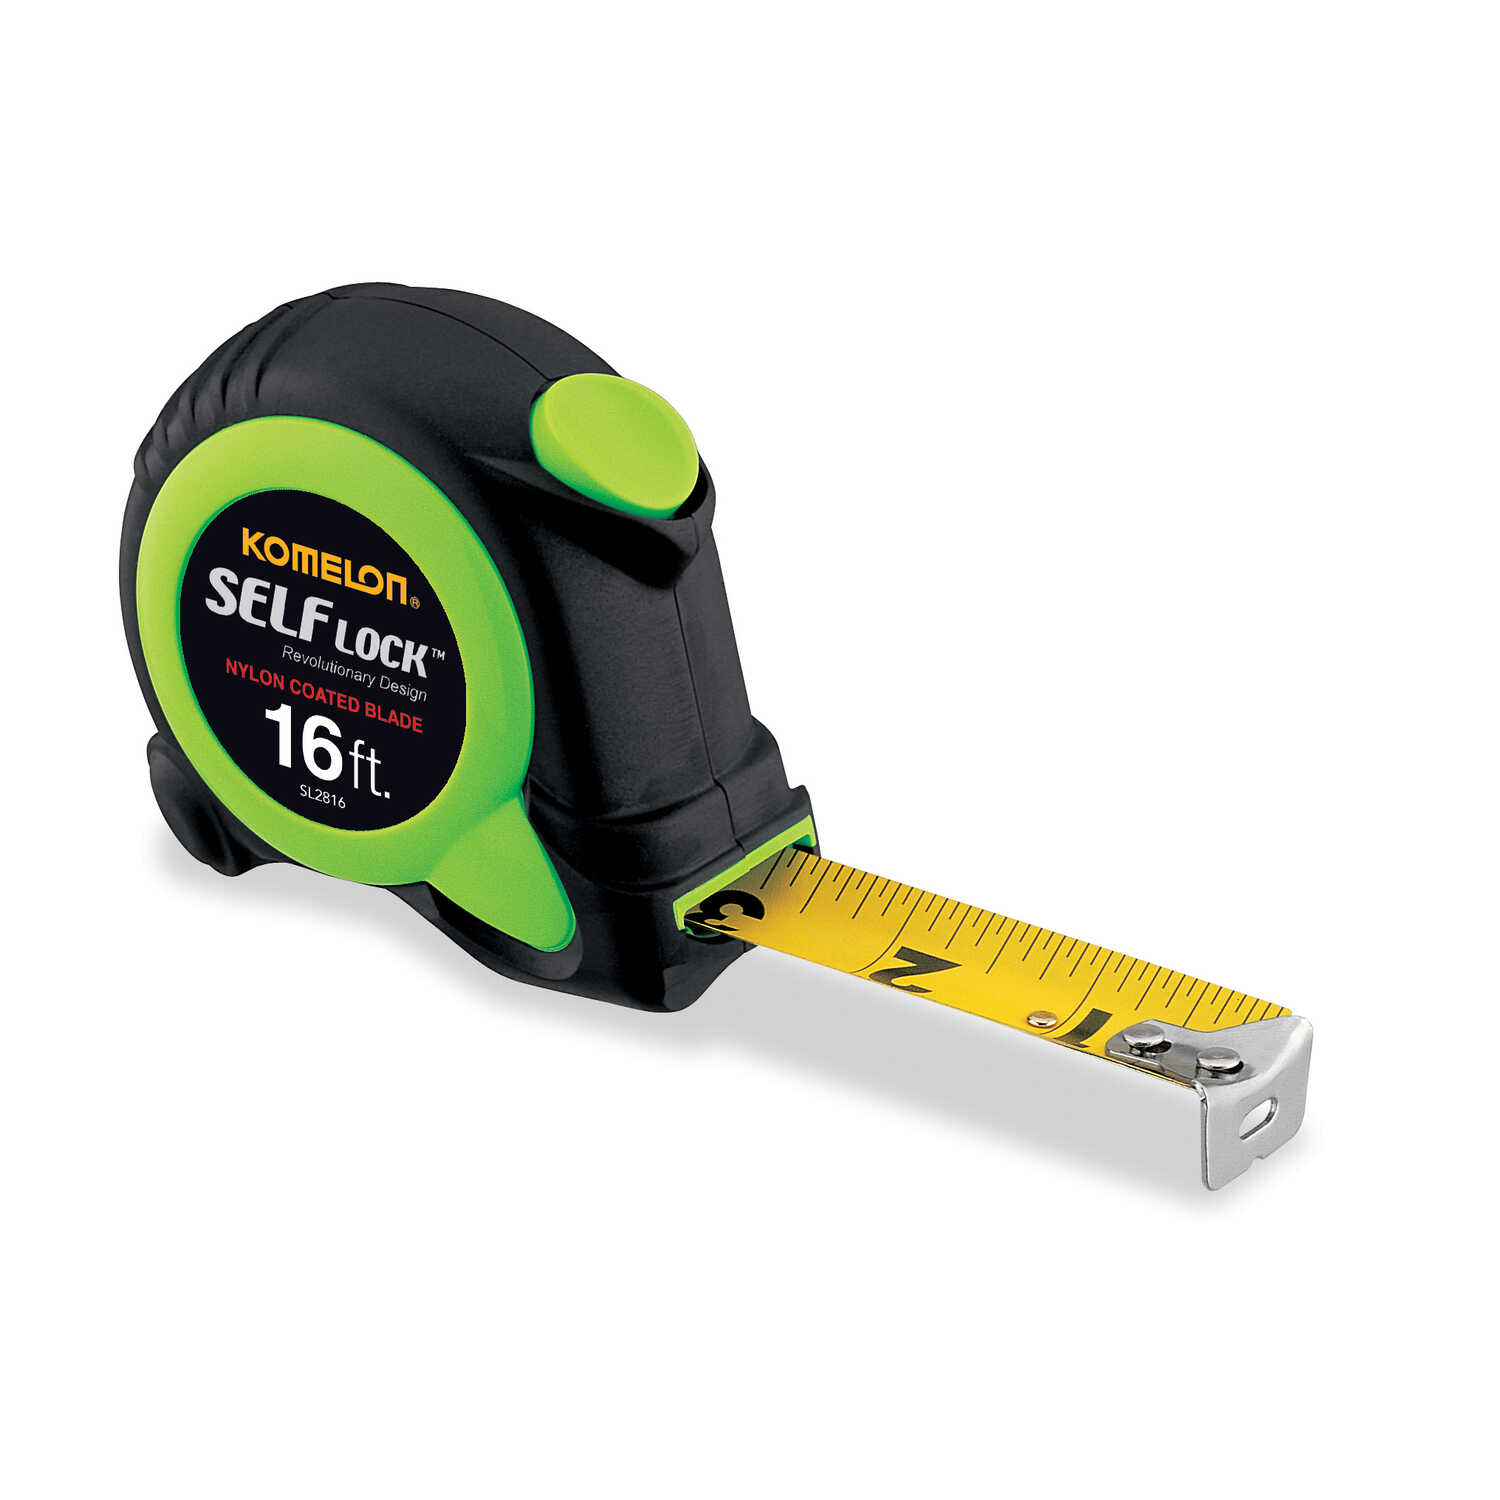 Komelon  Self Lock  0.75 in. W x 16 ft. L Auto Lock Tape Measure  Green  1 pk